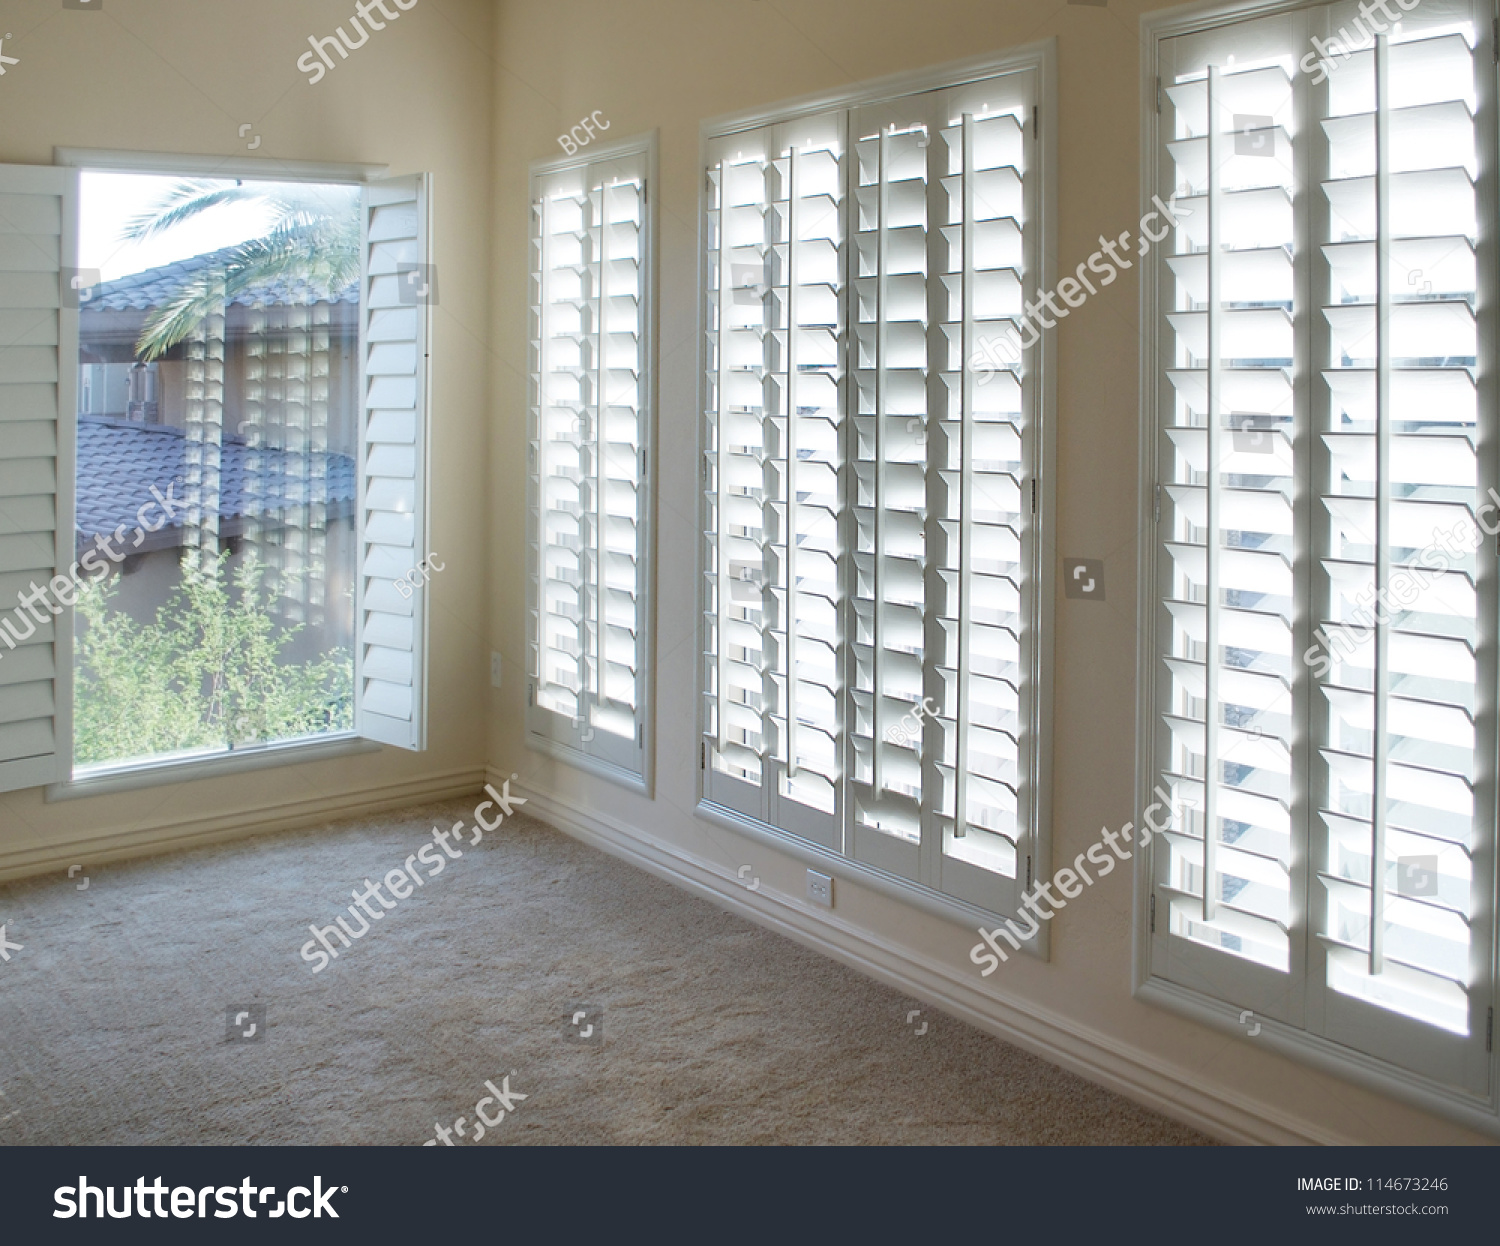 Plantation Interior Design White Plantation Style Wood Shutters For Luxury Interior